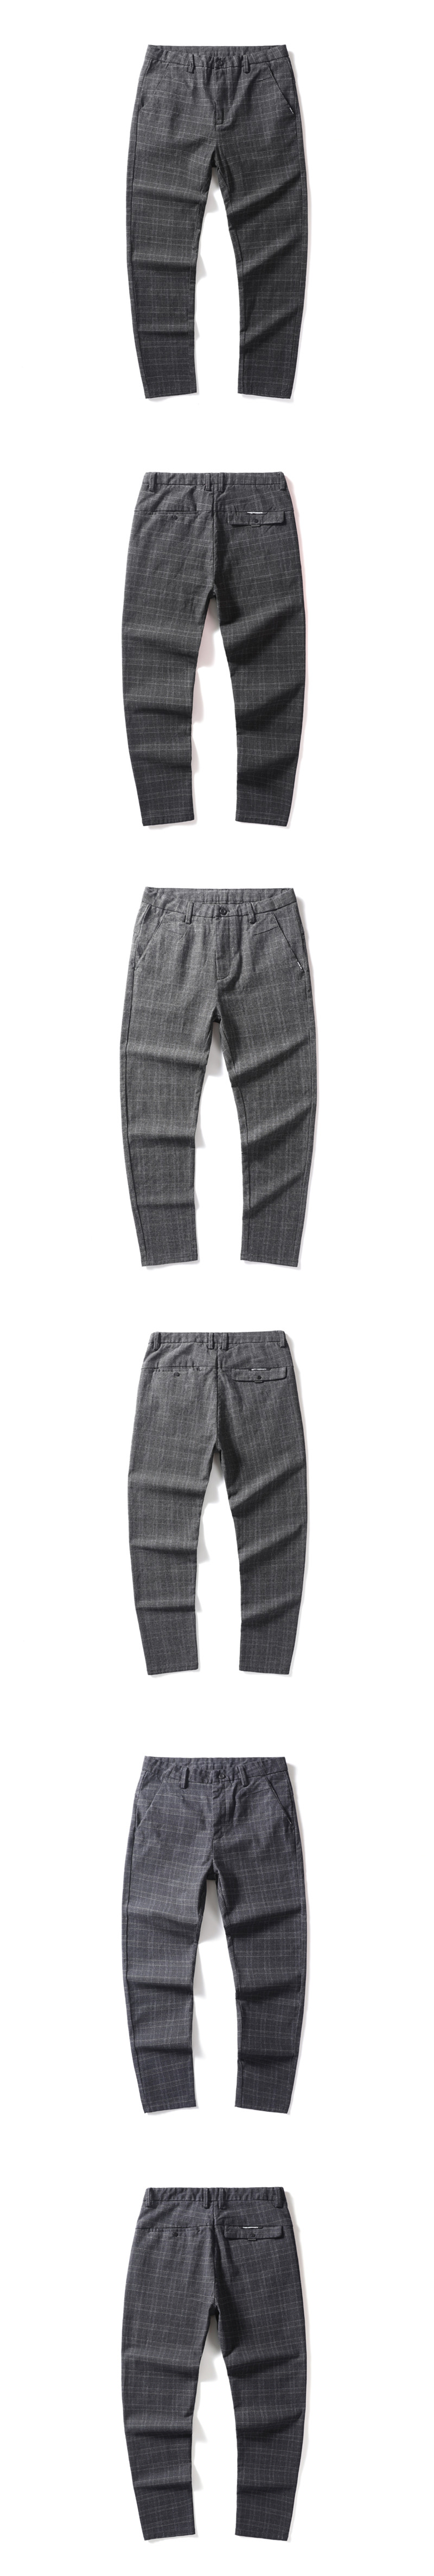 black grey blue color men's causal British style slim fit plaid check chino pants trousers pantalone for men autumn season